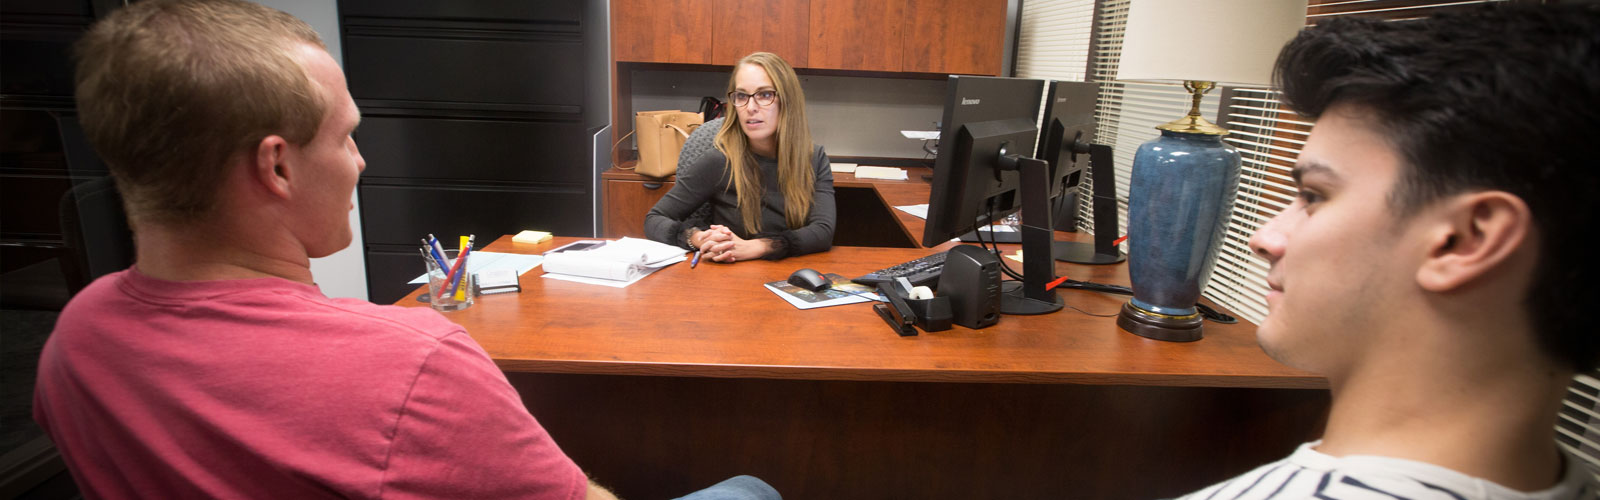 Law Professor speaking with two students in office setting